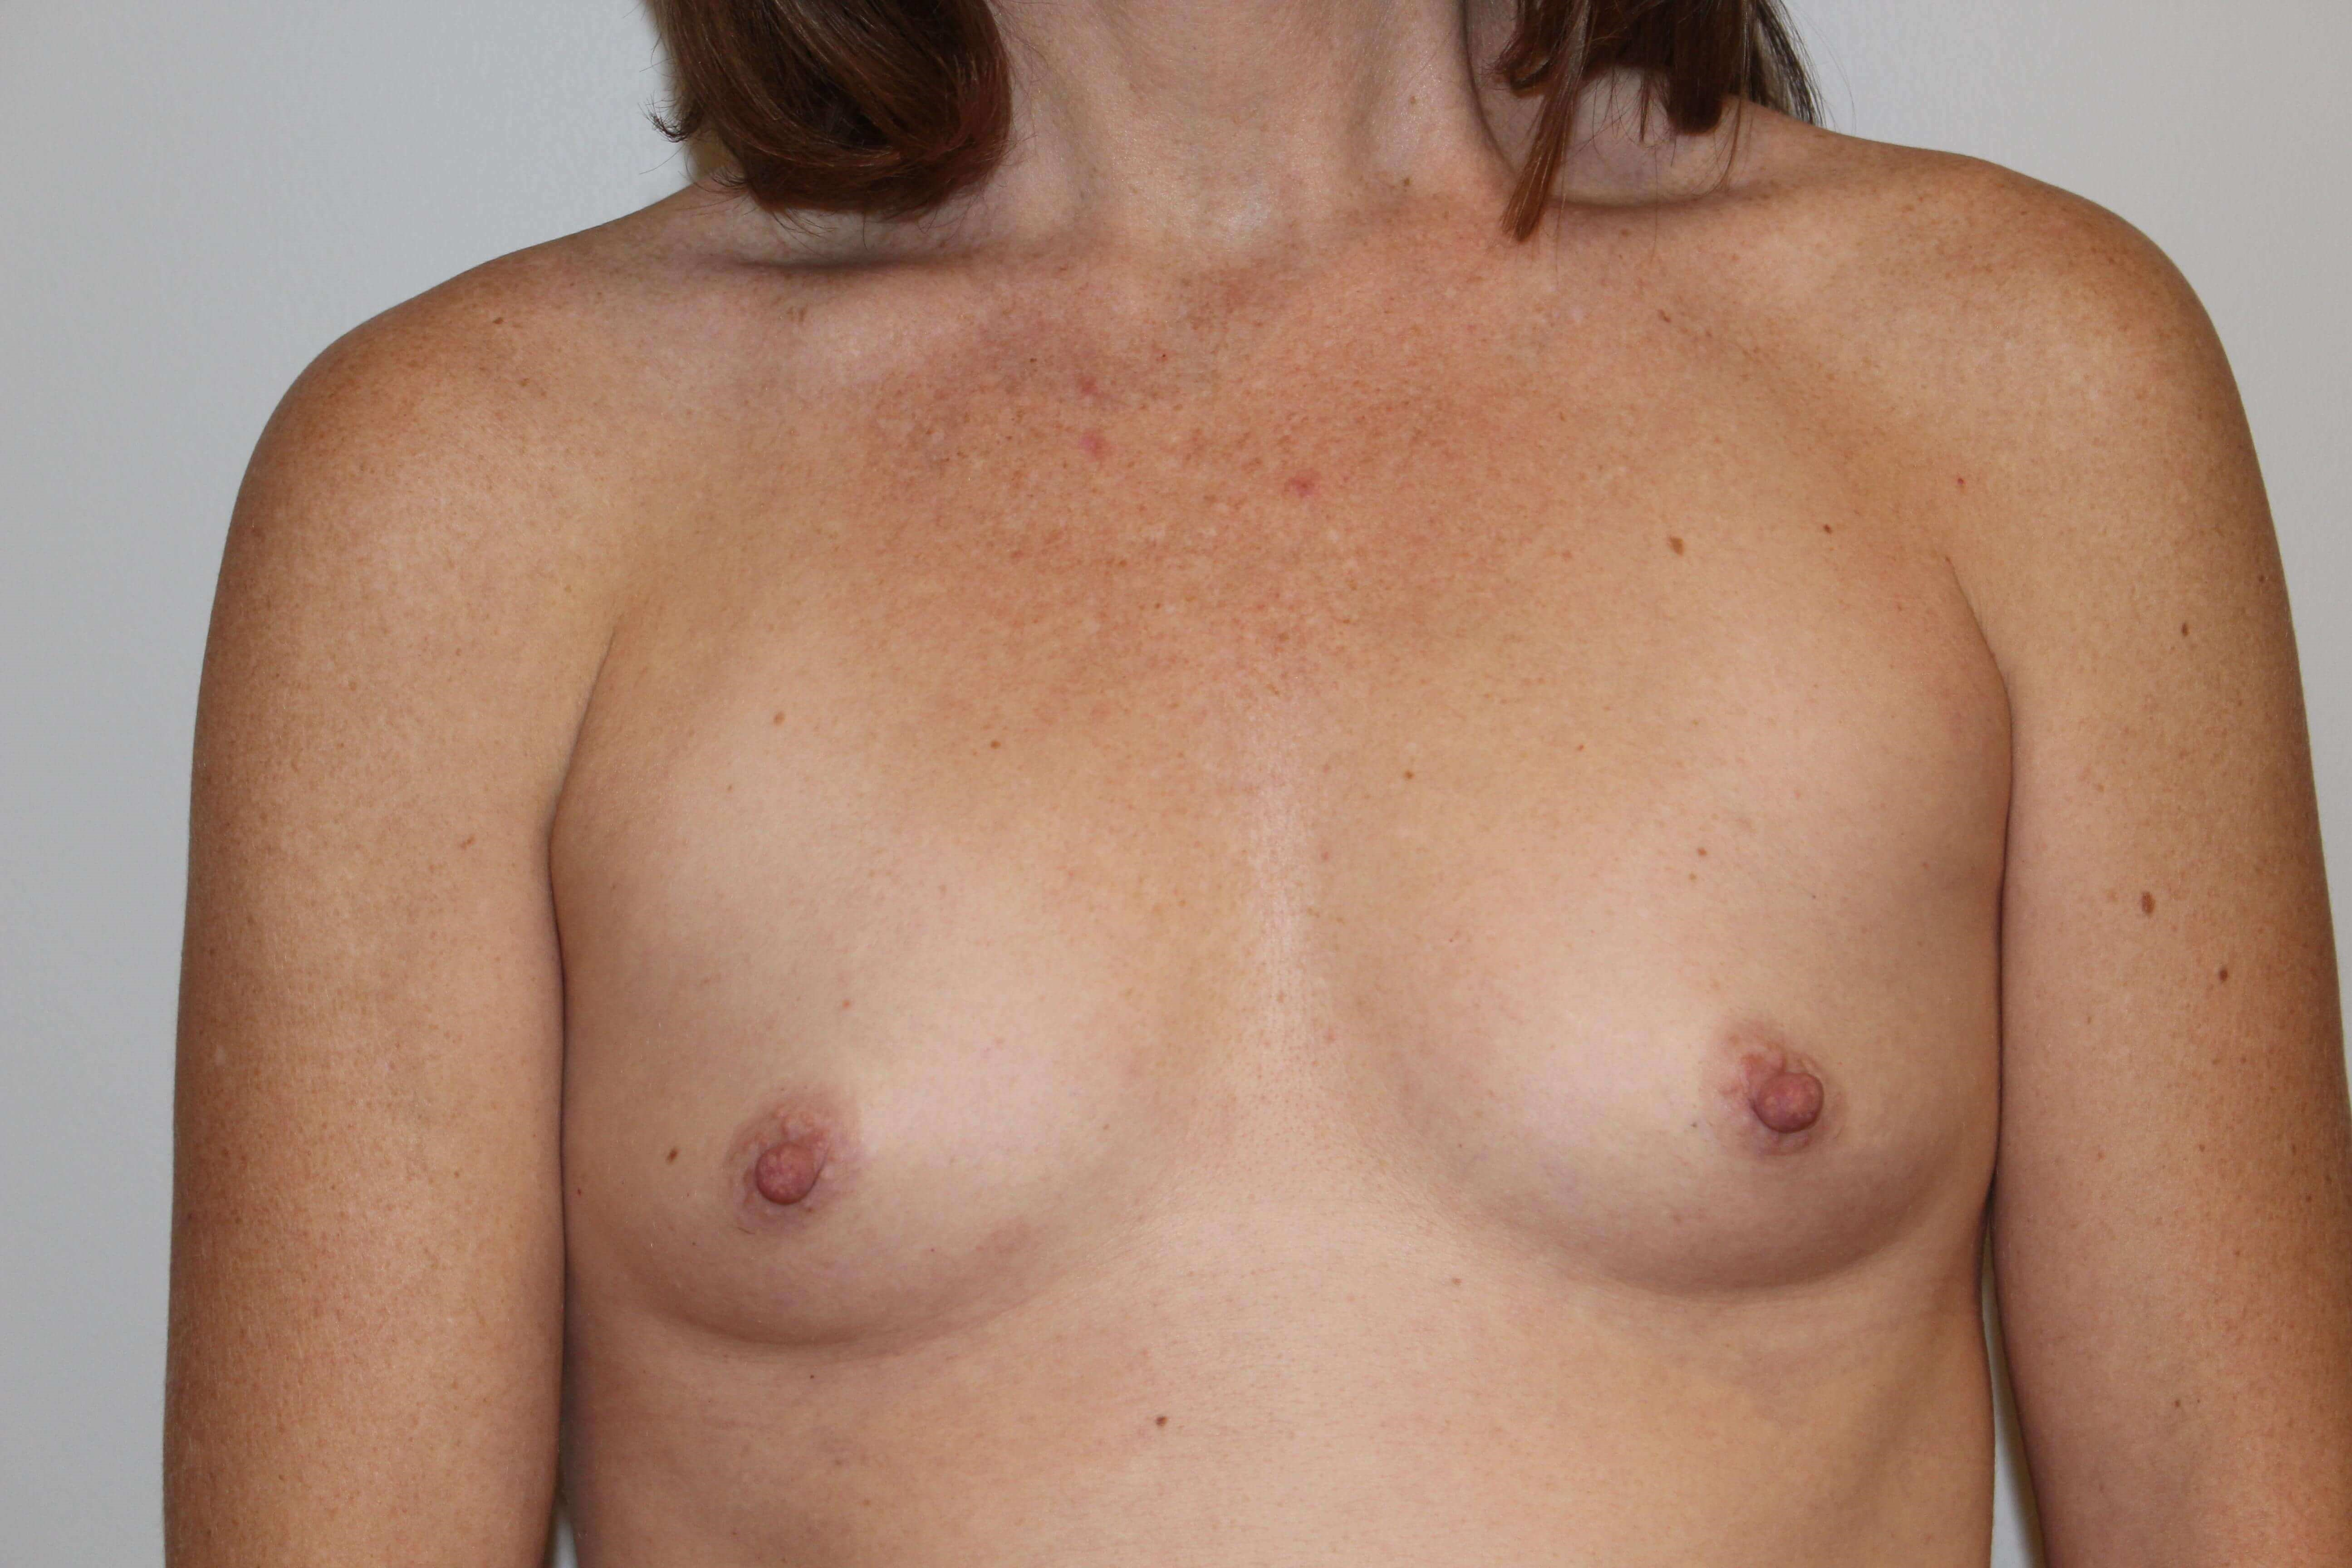 BA with 500cc Implants Before